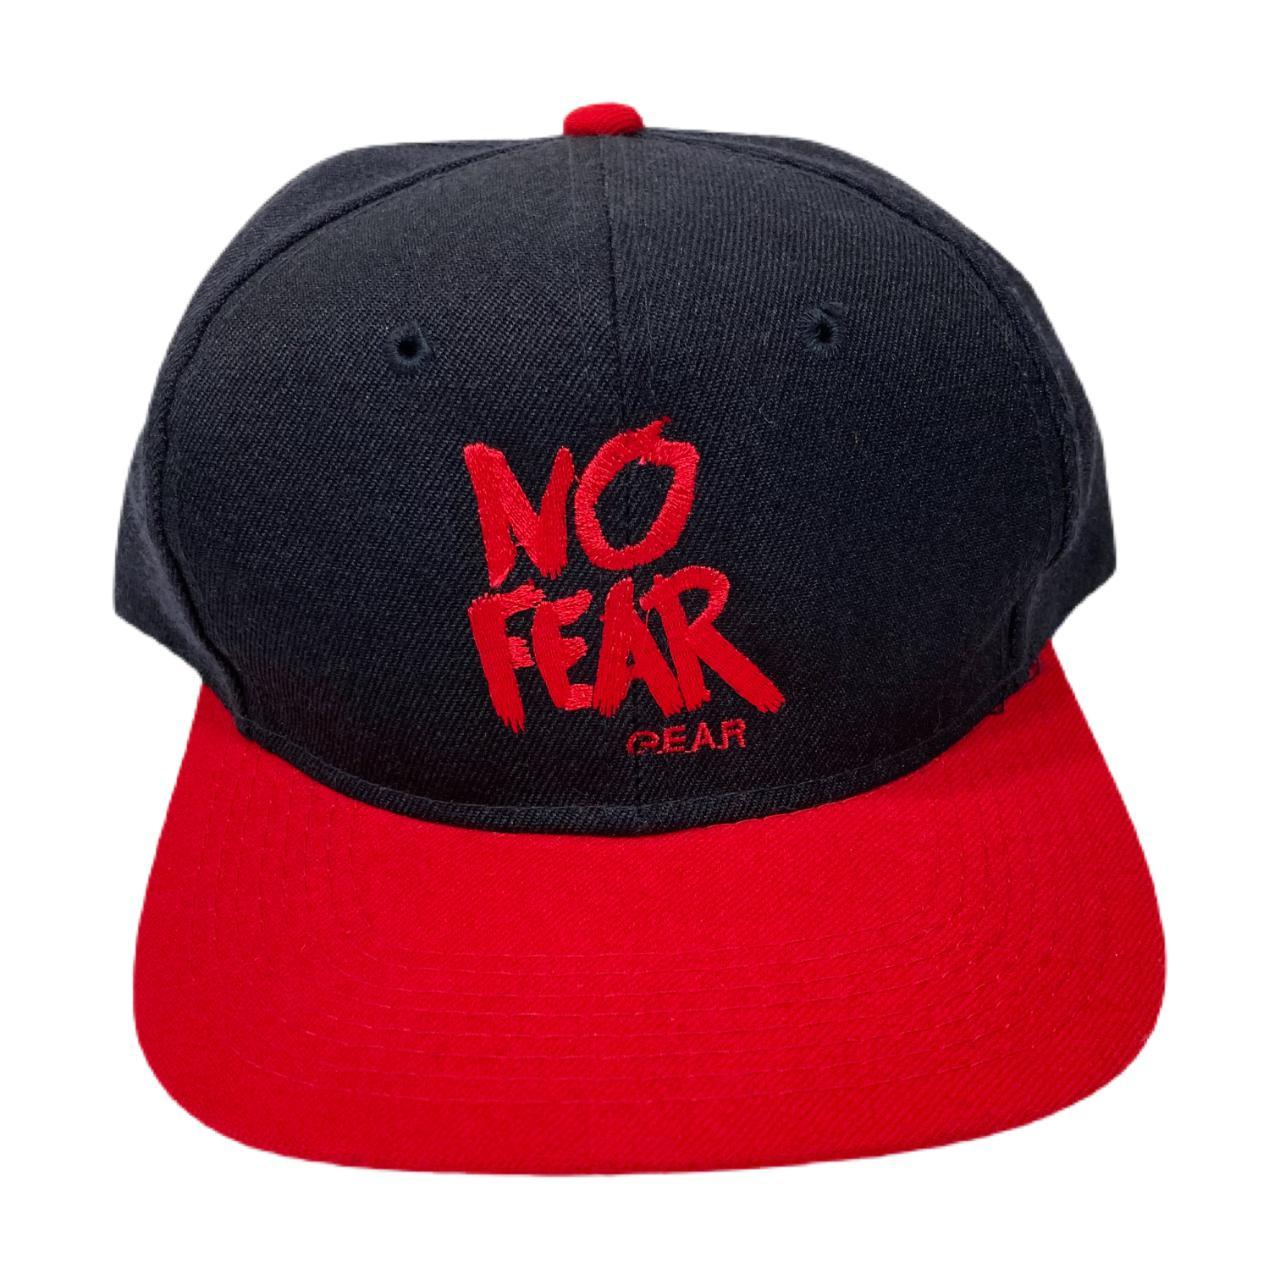 Product Image 1 - Vintage No Fear Gear with